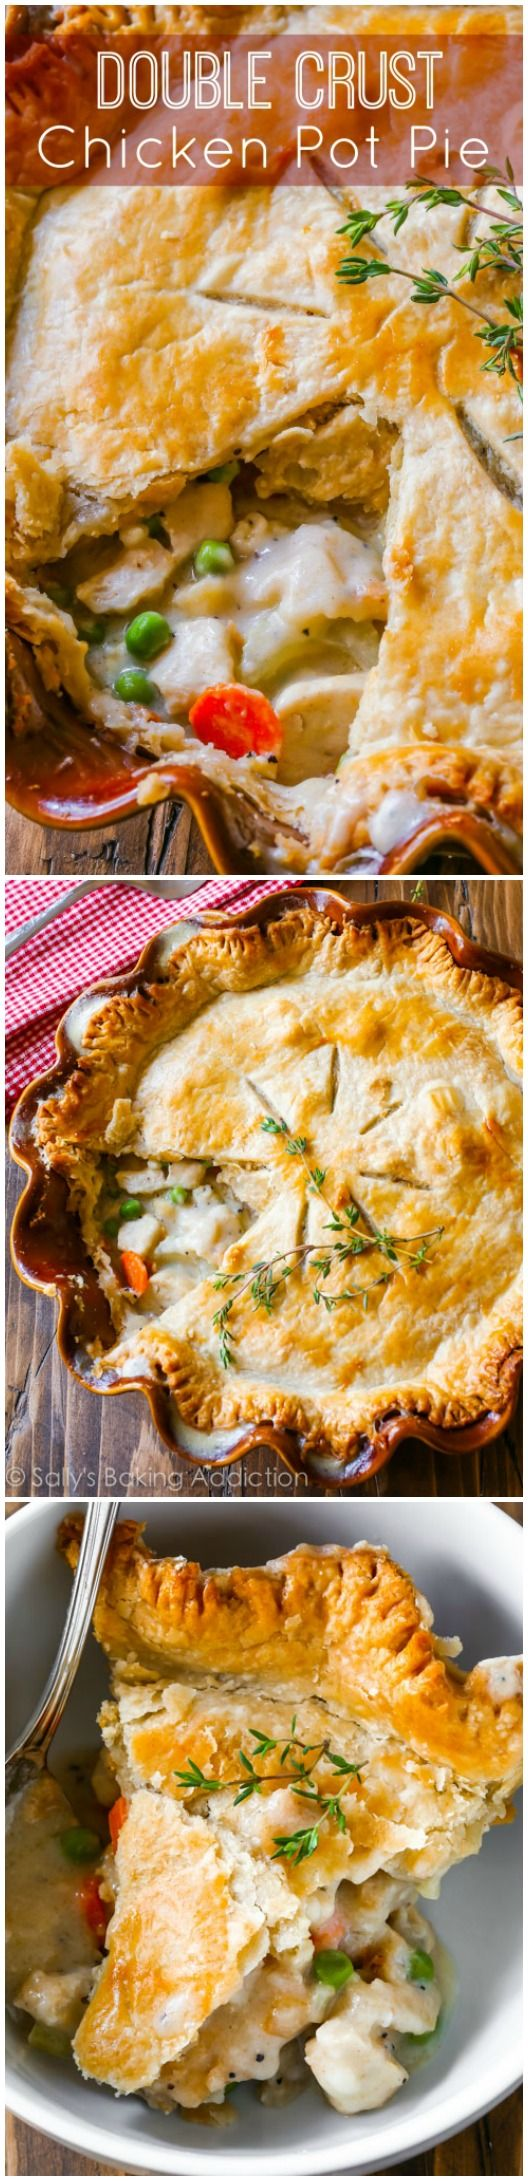 This double crust chicken pot pie is perfect when you're looking for comfort food and don't have all the time and energy in